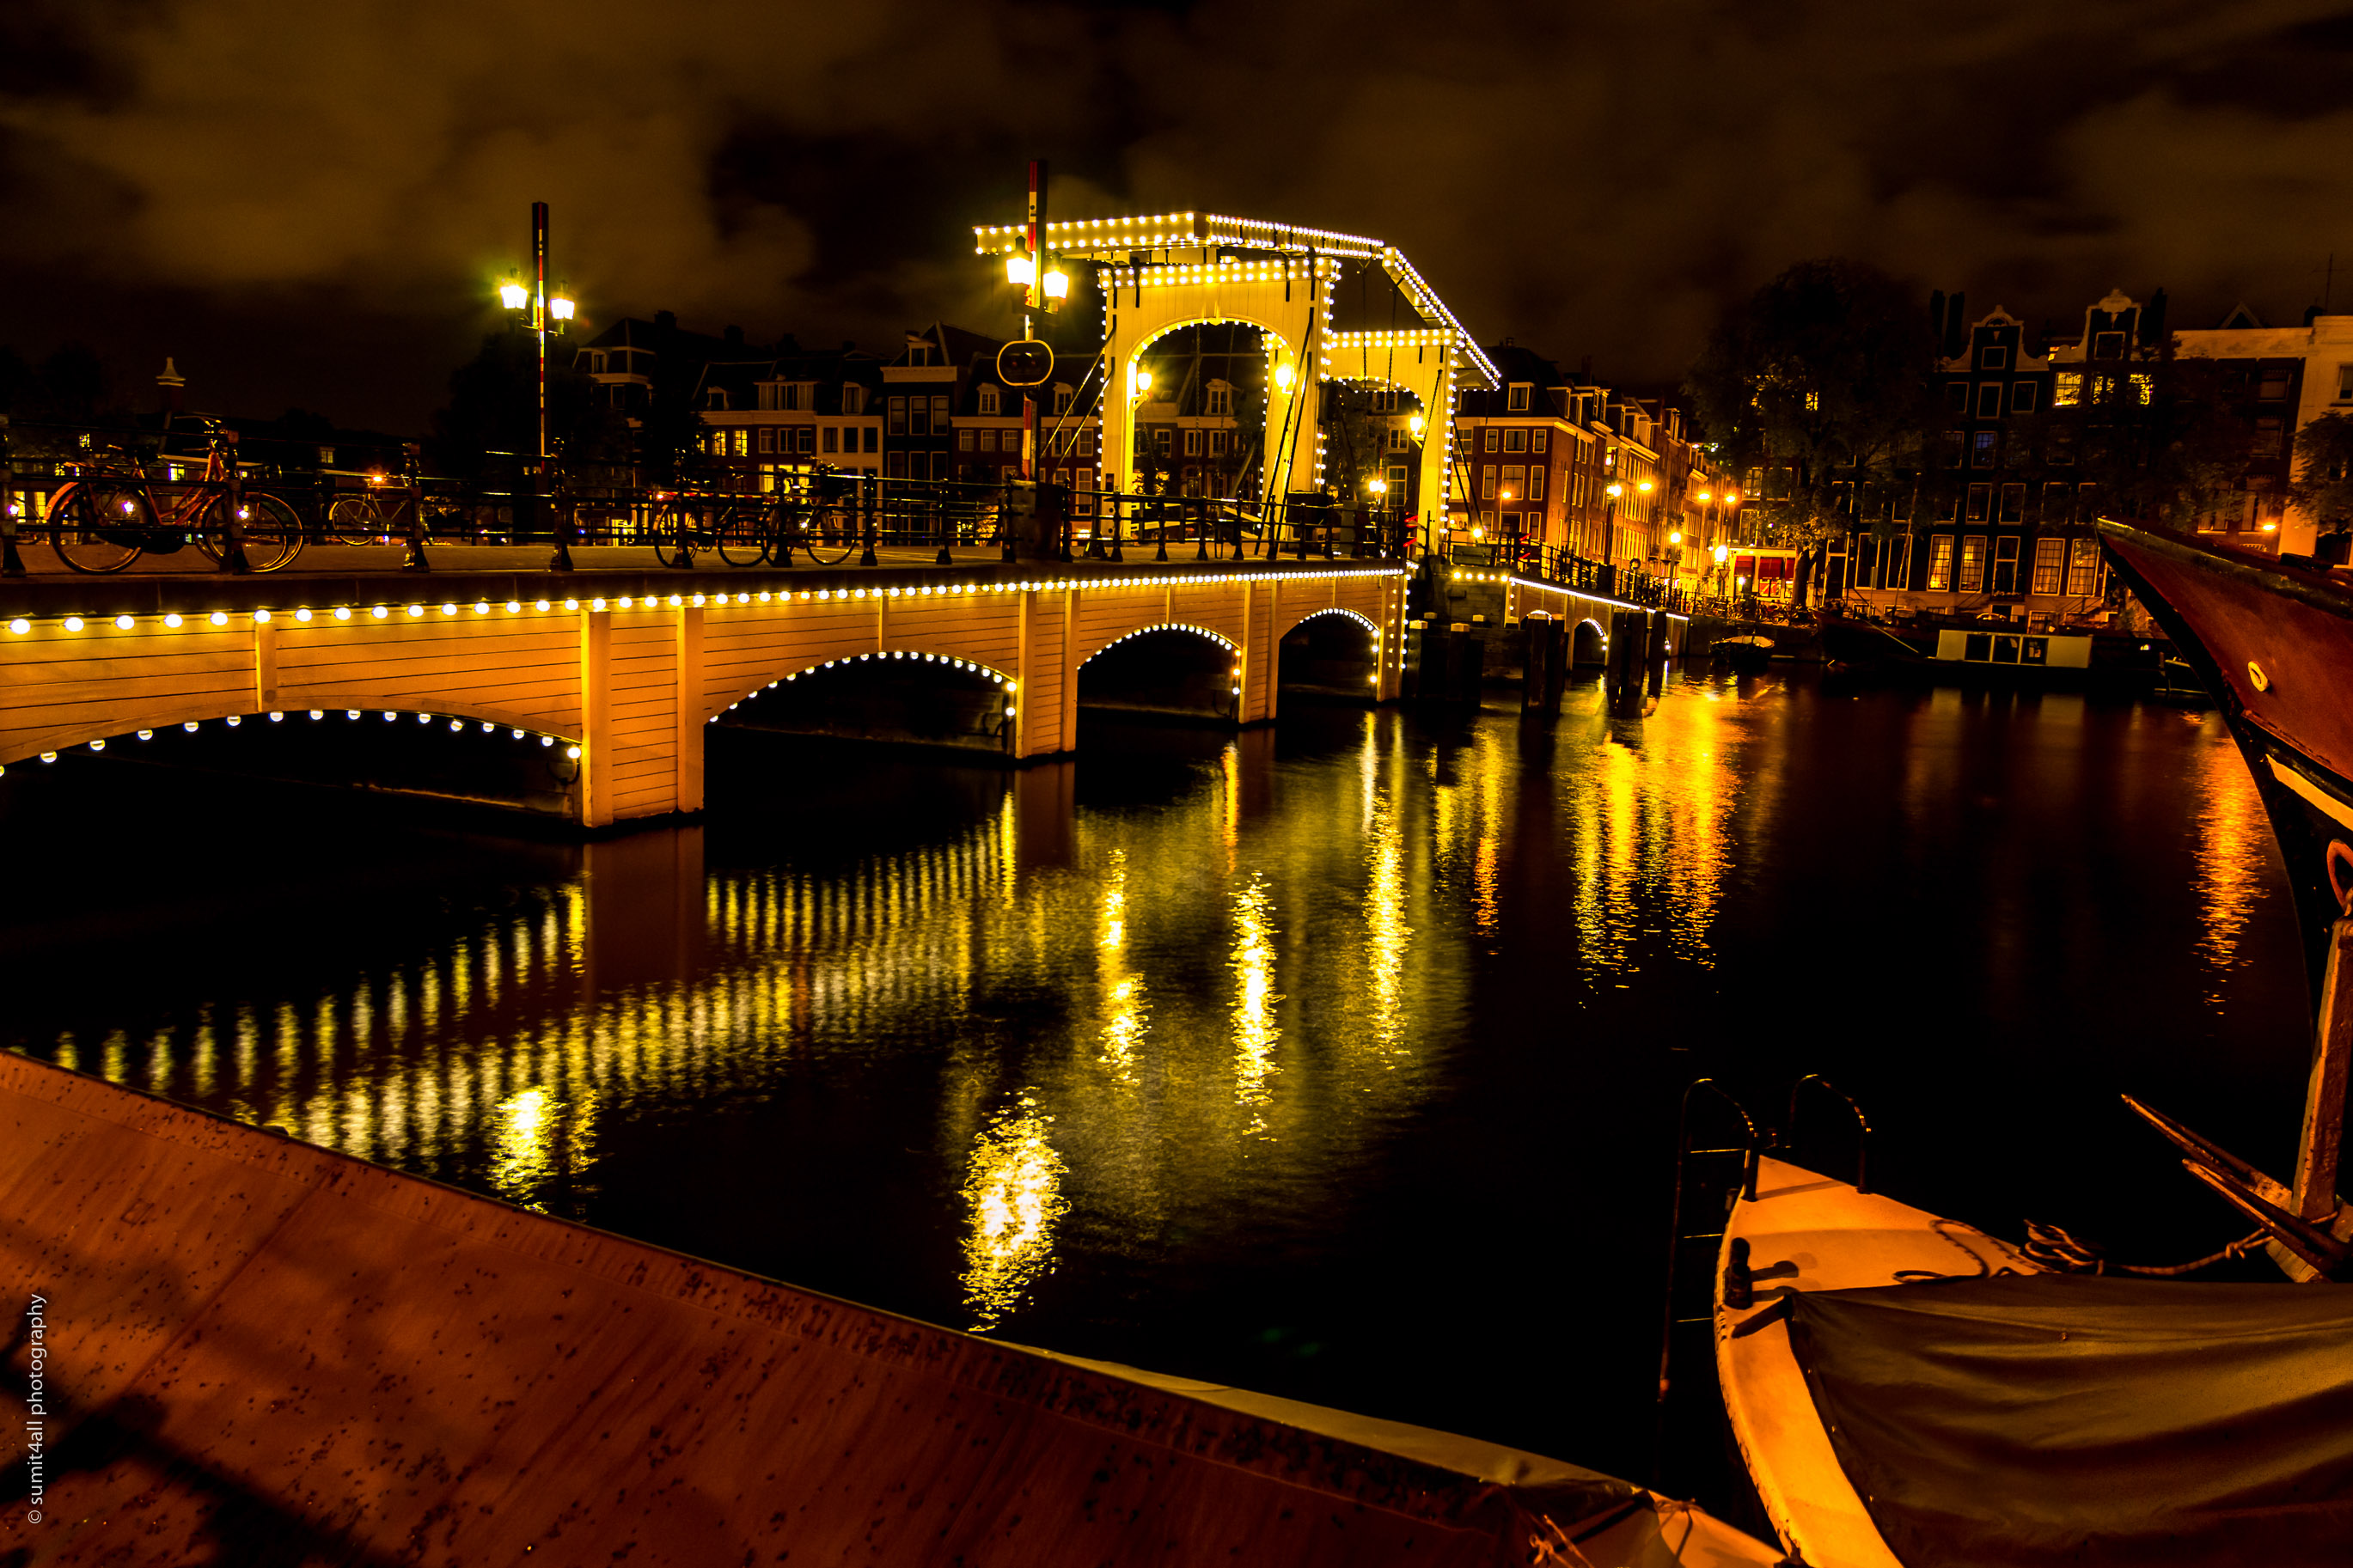 The Magere Brug in Amsterdam